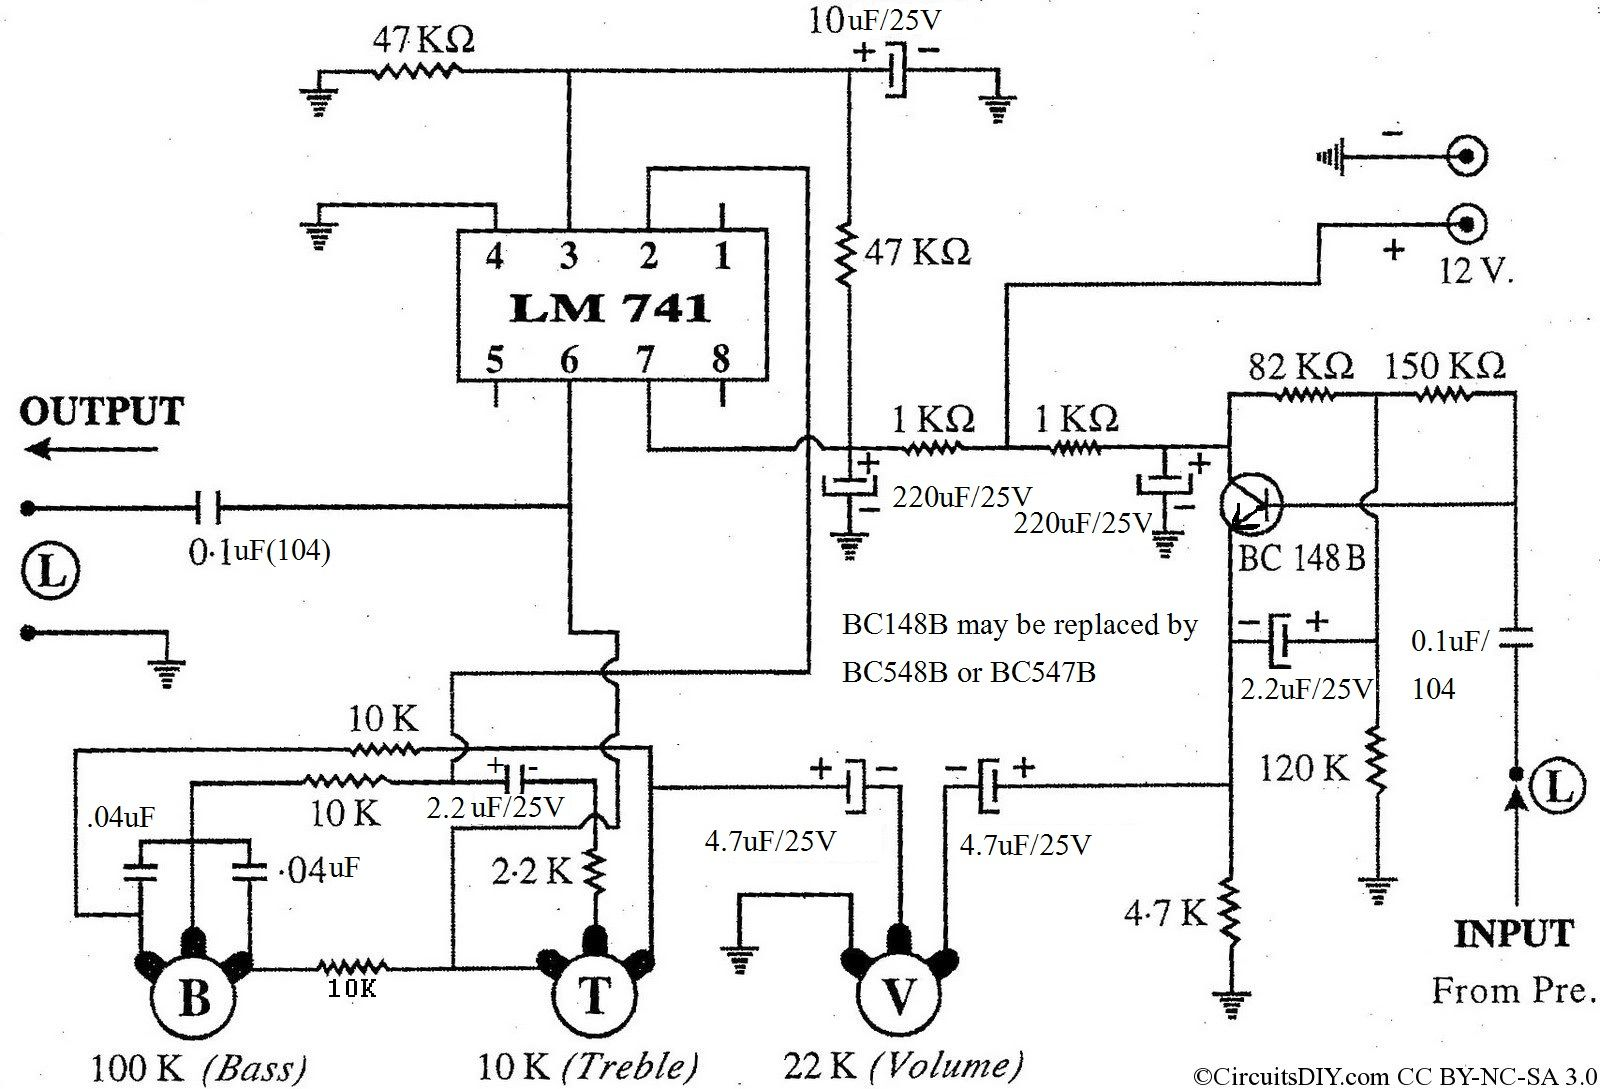 hight resolution of a large online repository or library of guitar pedal schematics layouts pcb transfers and tagboard layouts all rights reserved to respective owner s